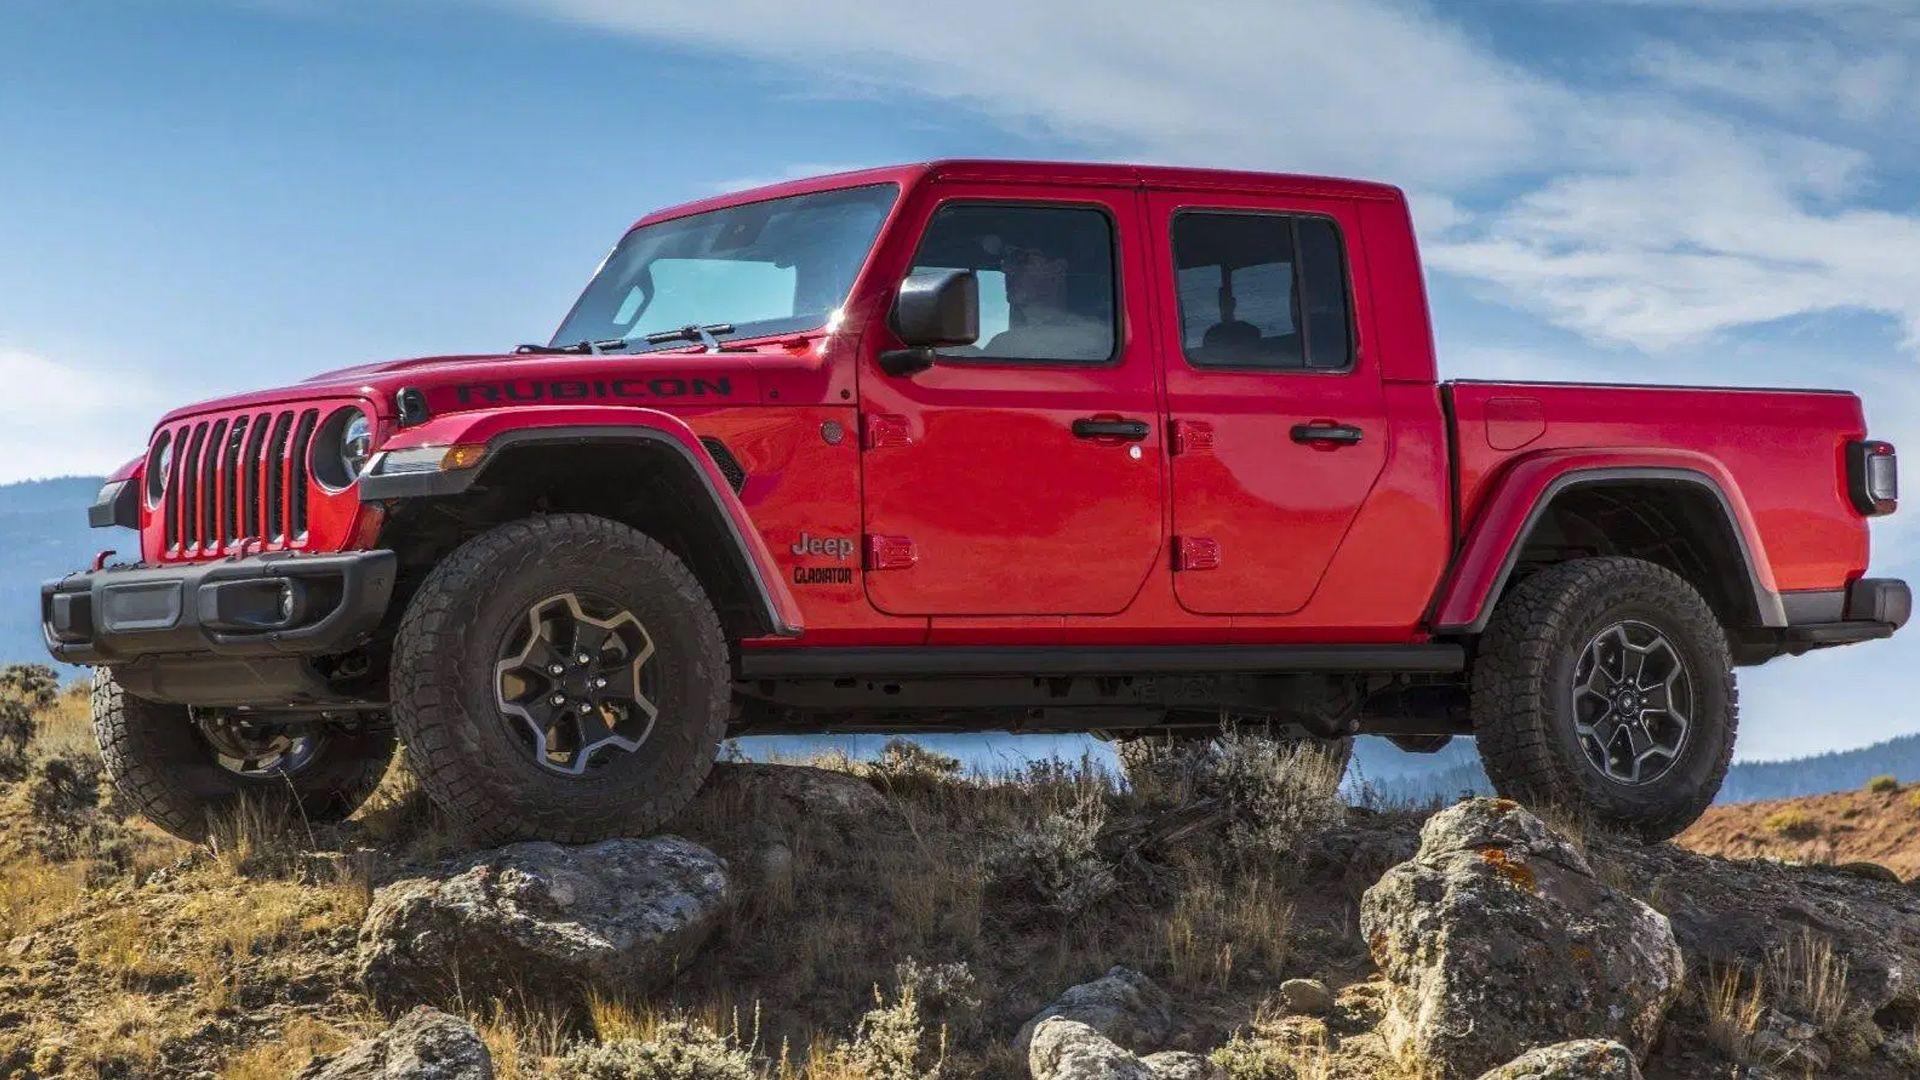 The All New 2020 Jeep Gladiator The Most Capable Midsize Truck